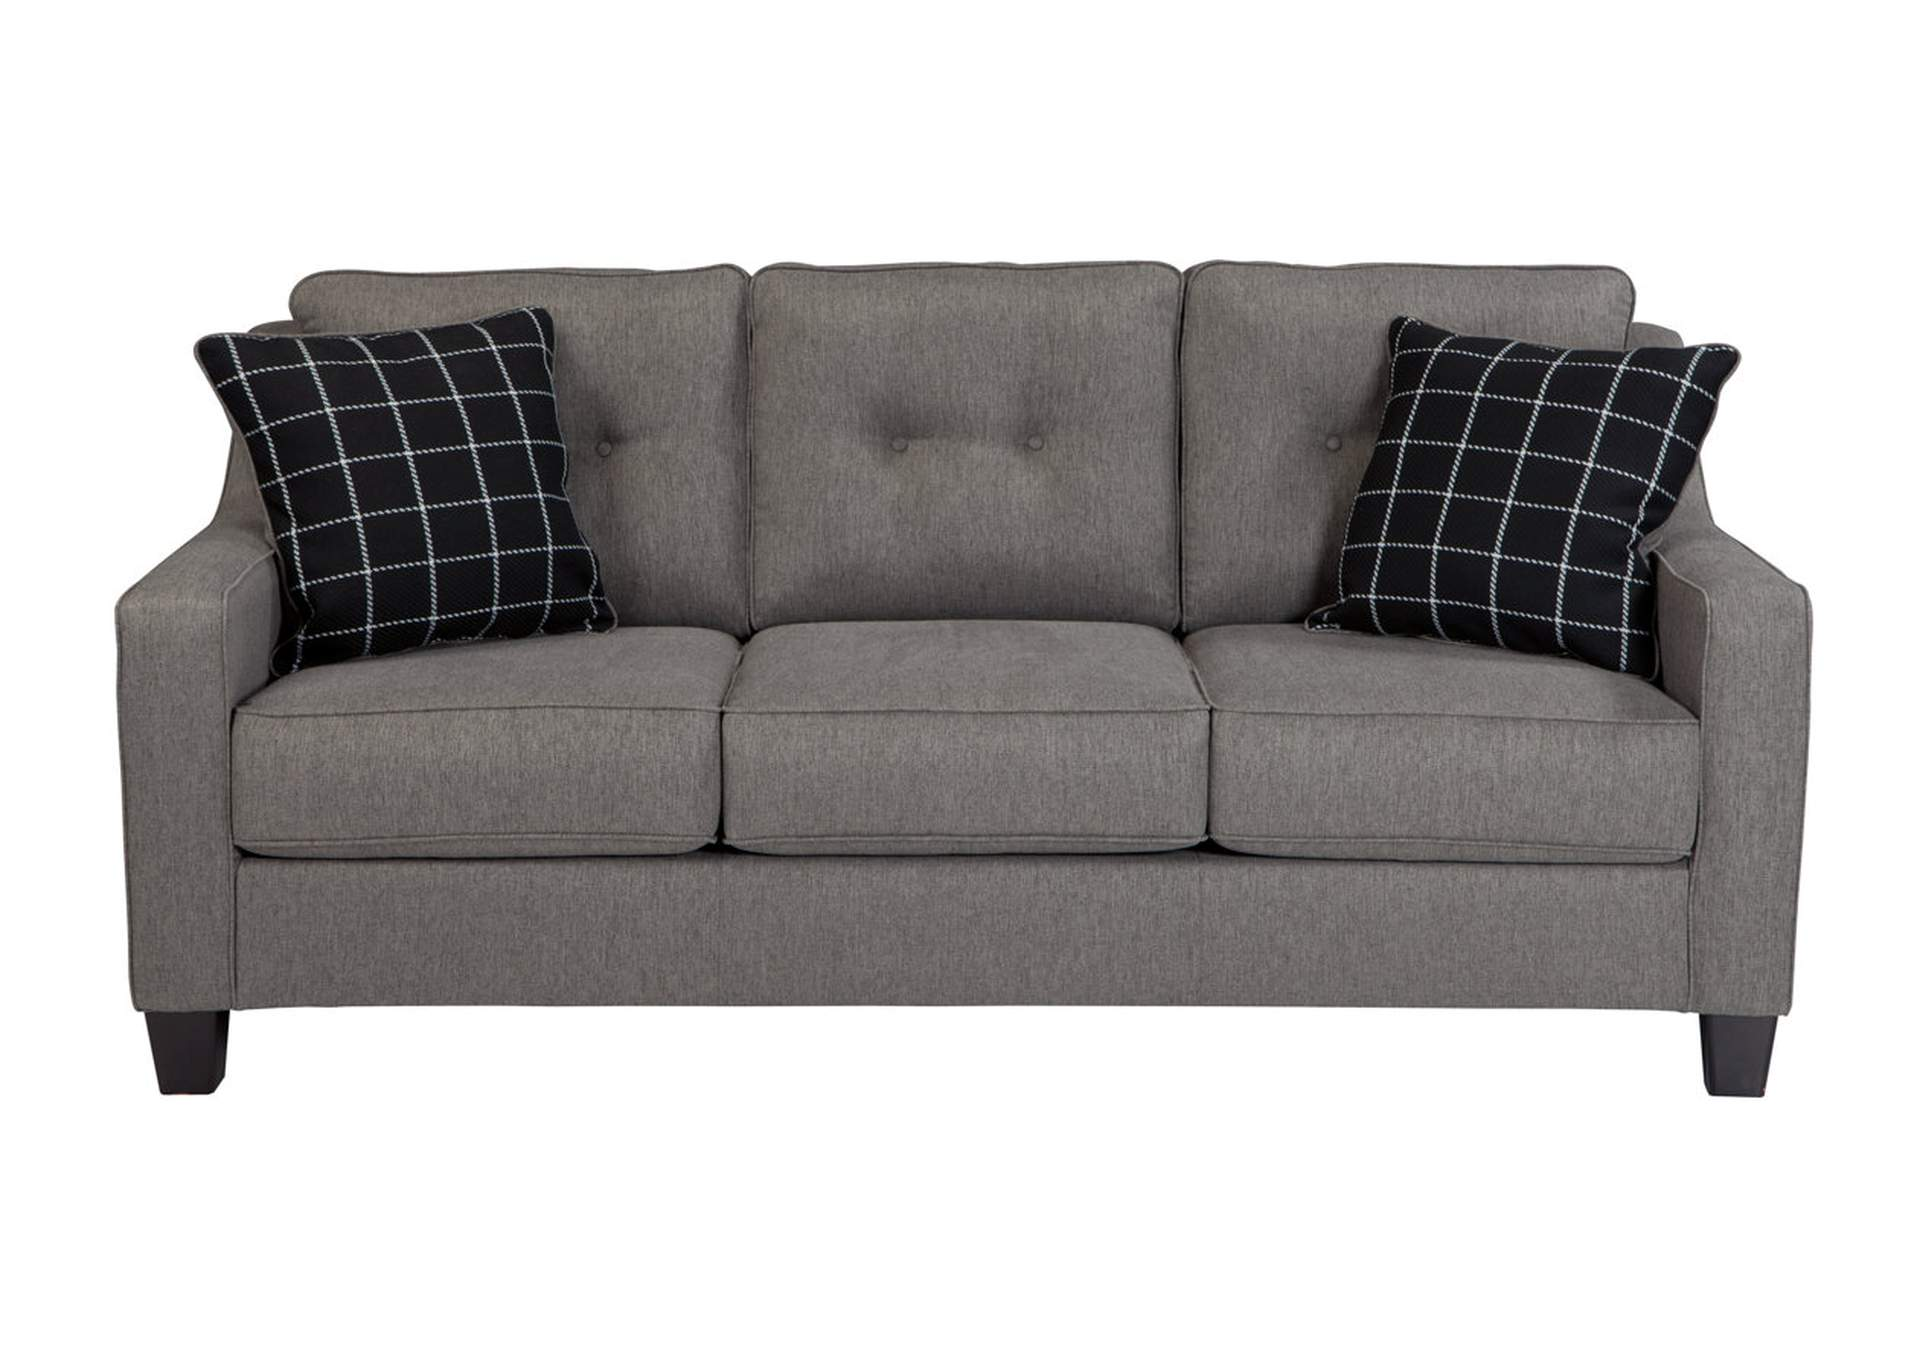 Austin 39 S Couch Potatoes Furniture Stores Austin Texas Brindon Charcoal Sofa